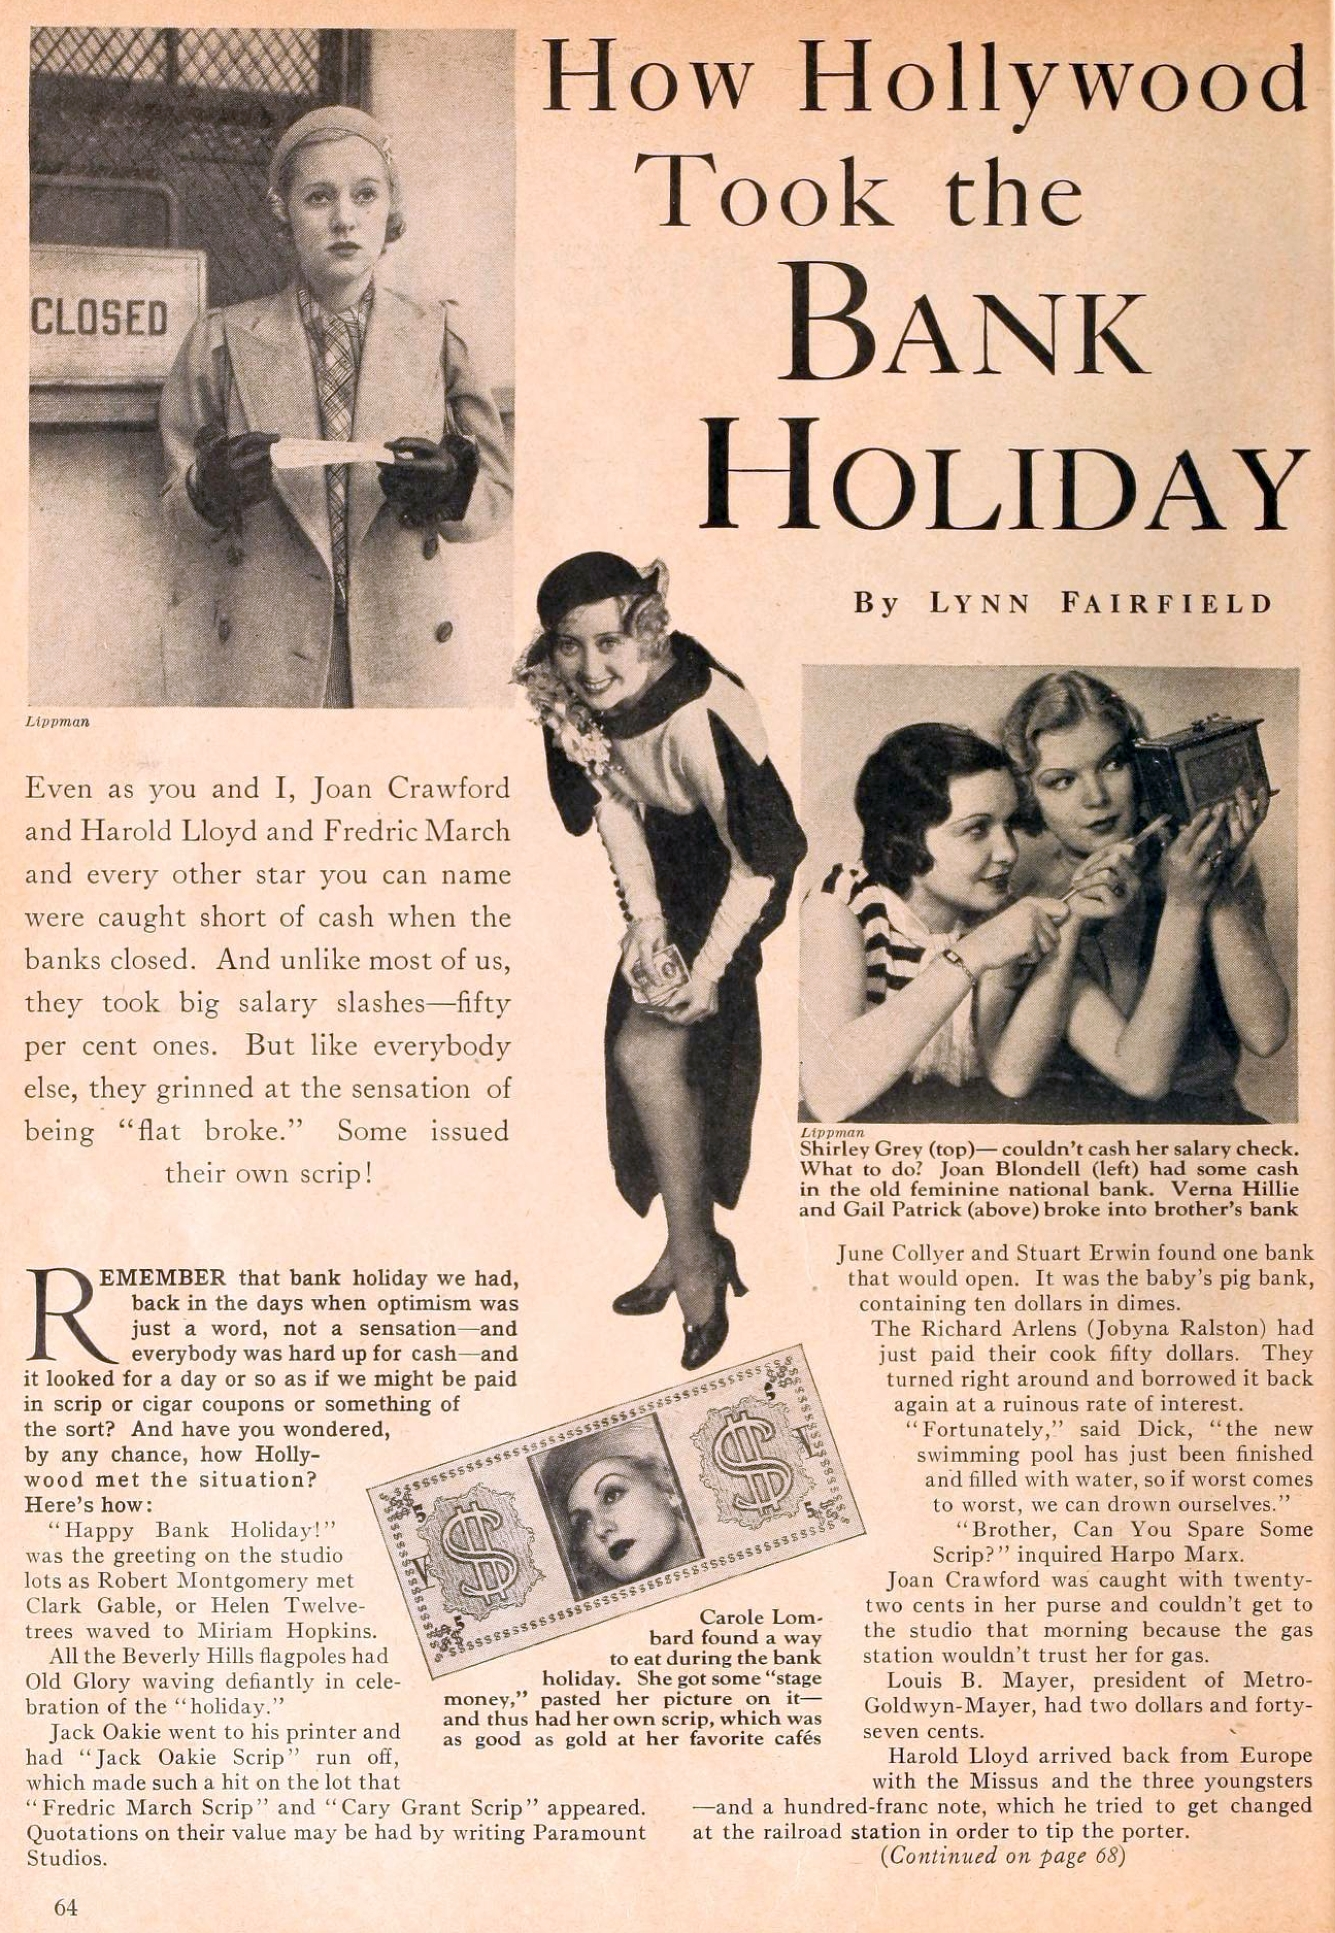 carole lombard motion picture june 1933 bank holiday 00a